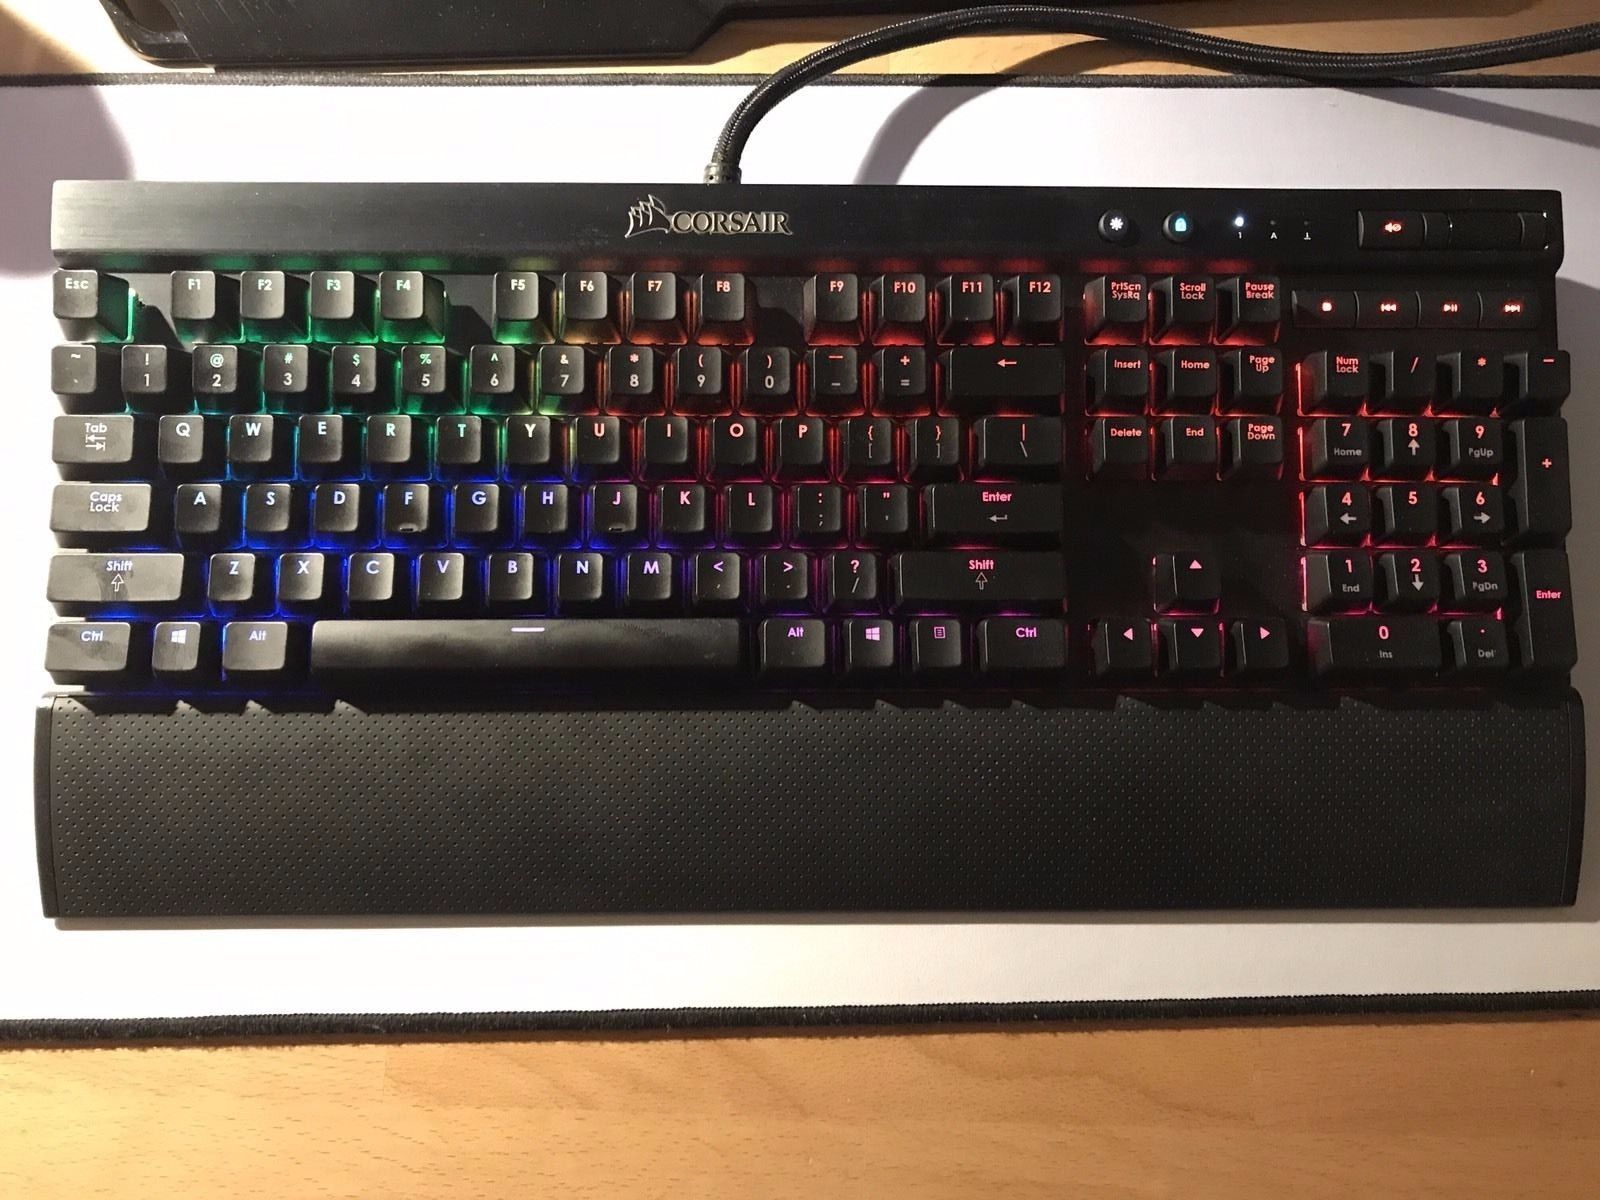 corsair k70 lux mechanical gaming red led keyboard - cherry mx red